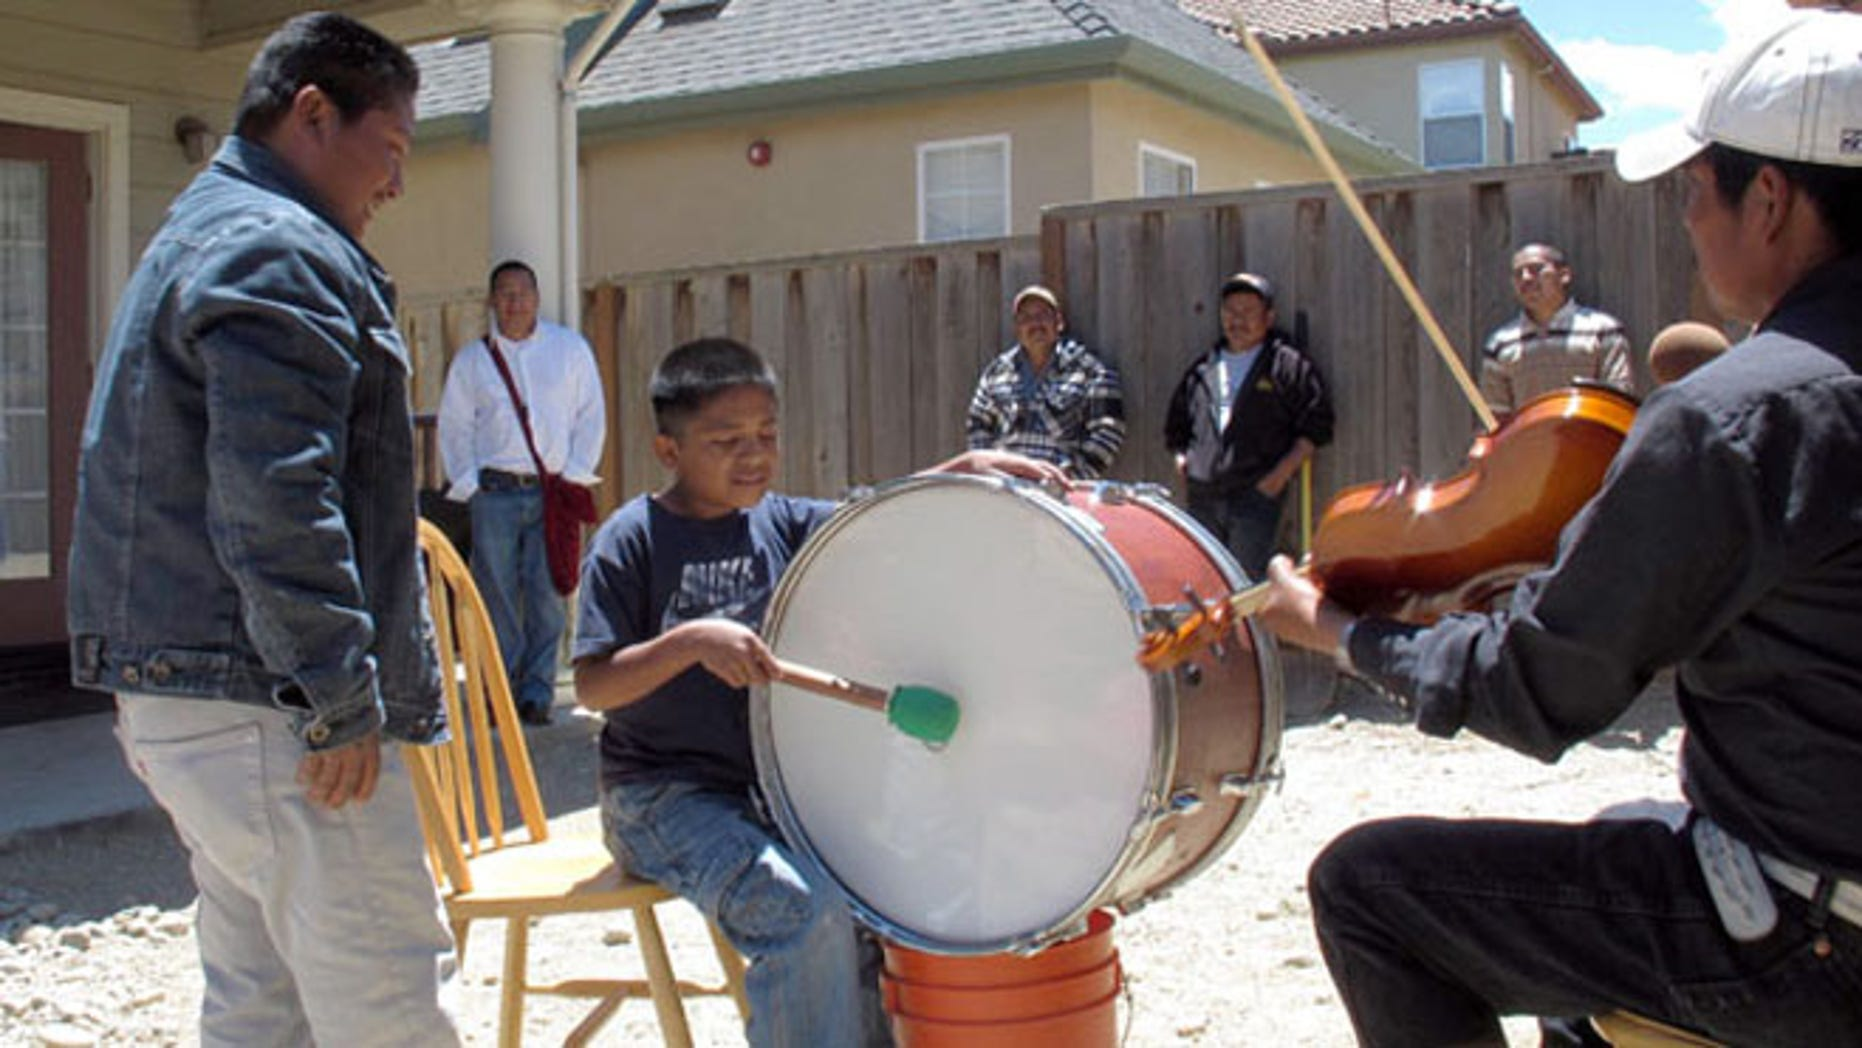 Trique children, whose families migrated from the Mexican state of Oaxaca, learn how to play traditional instruments in Greenfield, Calif. (AP Photo/Gosia Wozniacka)